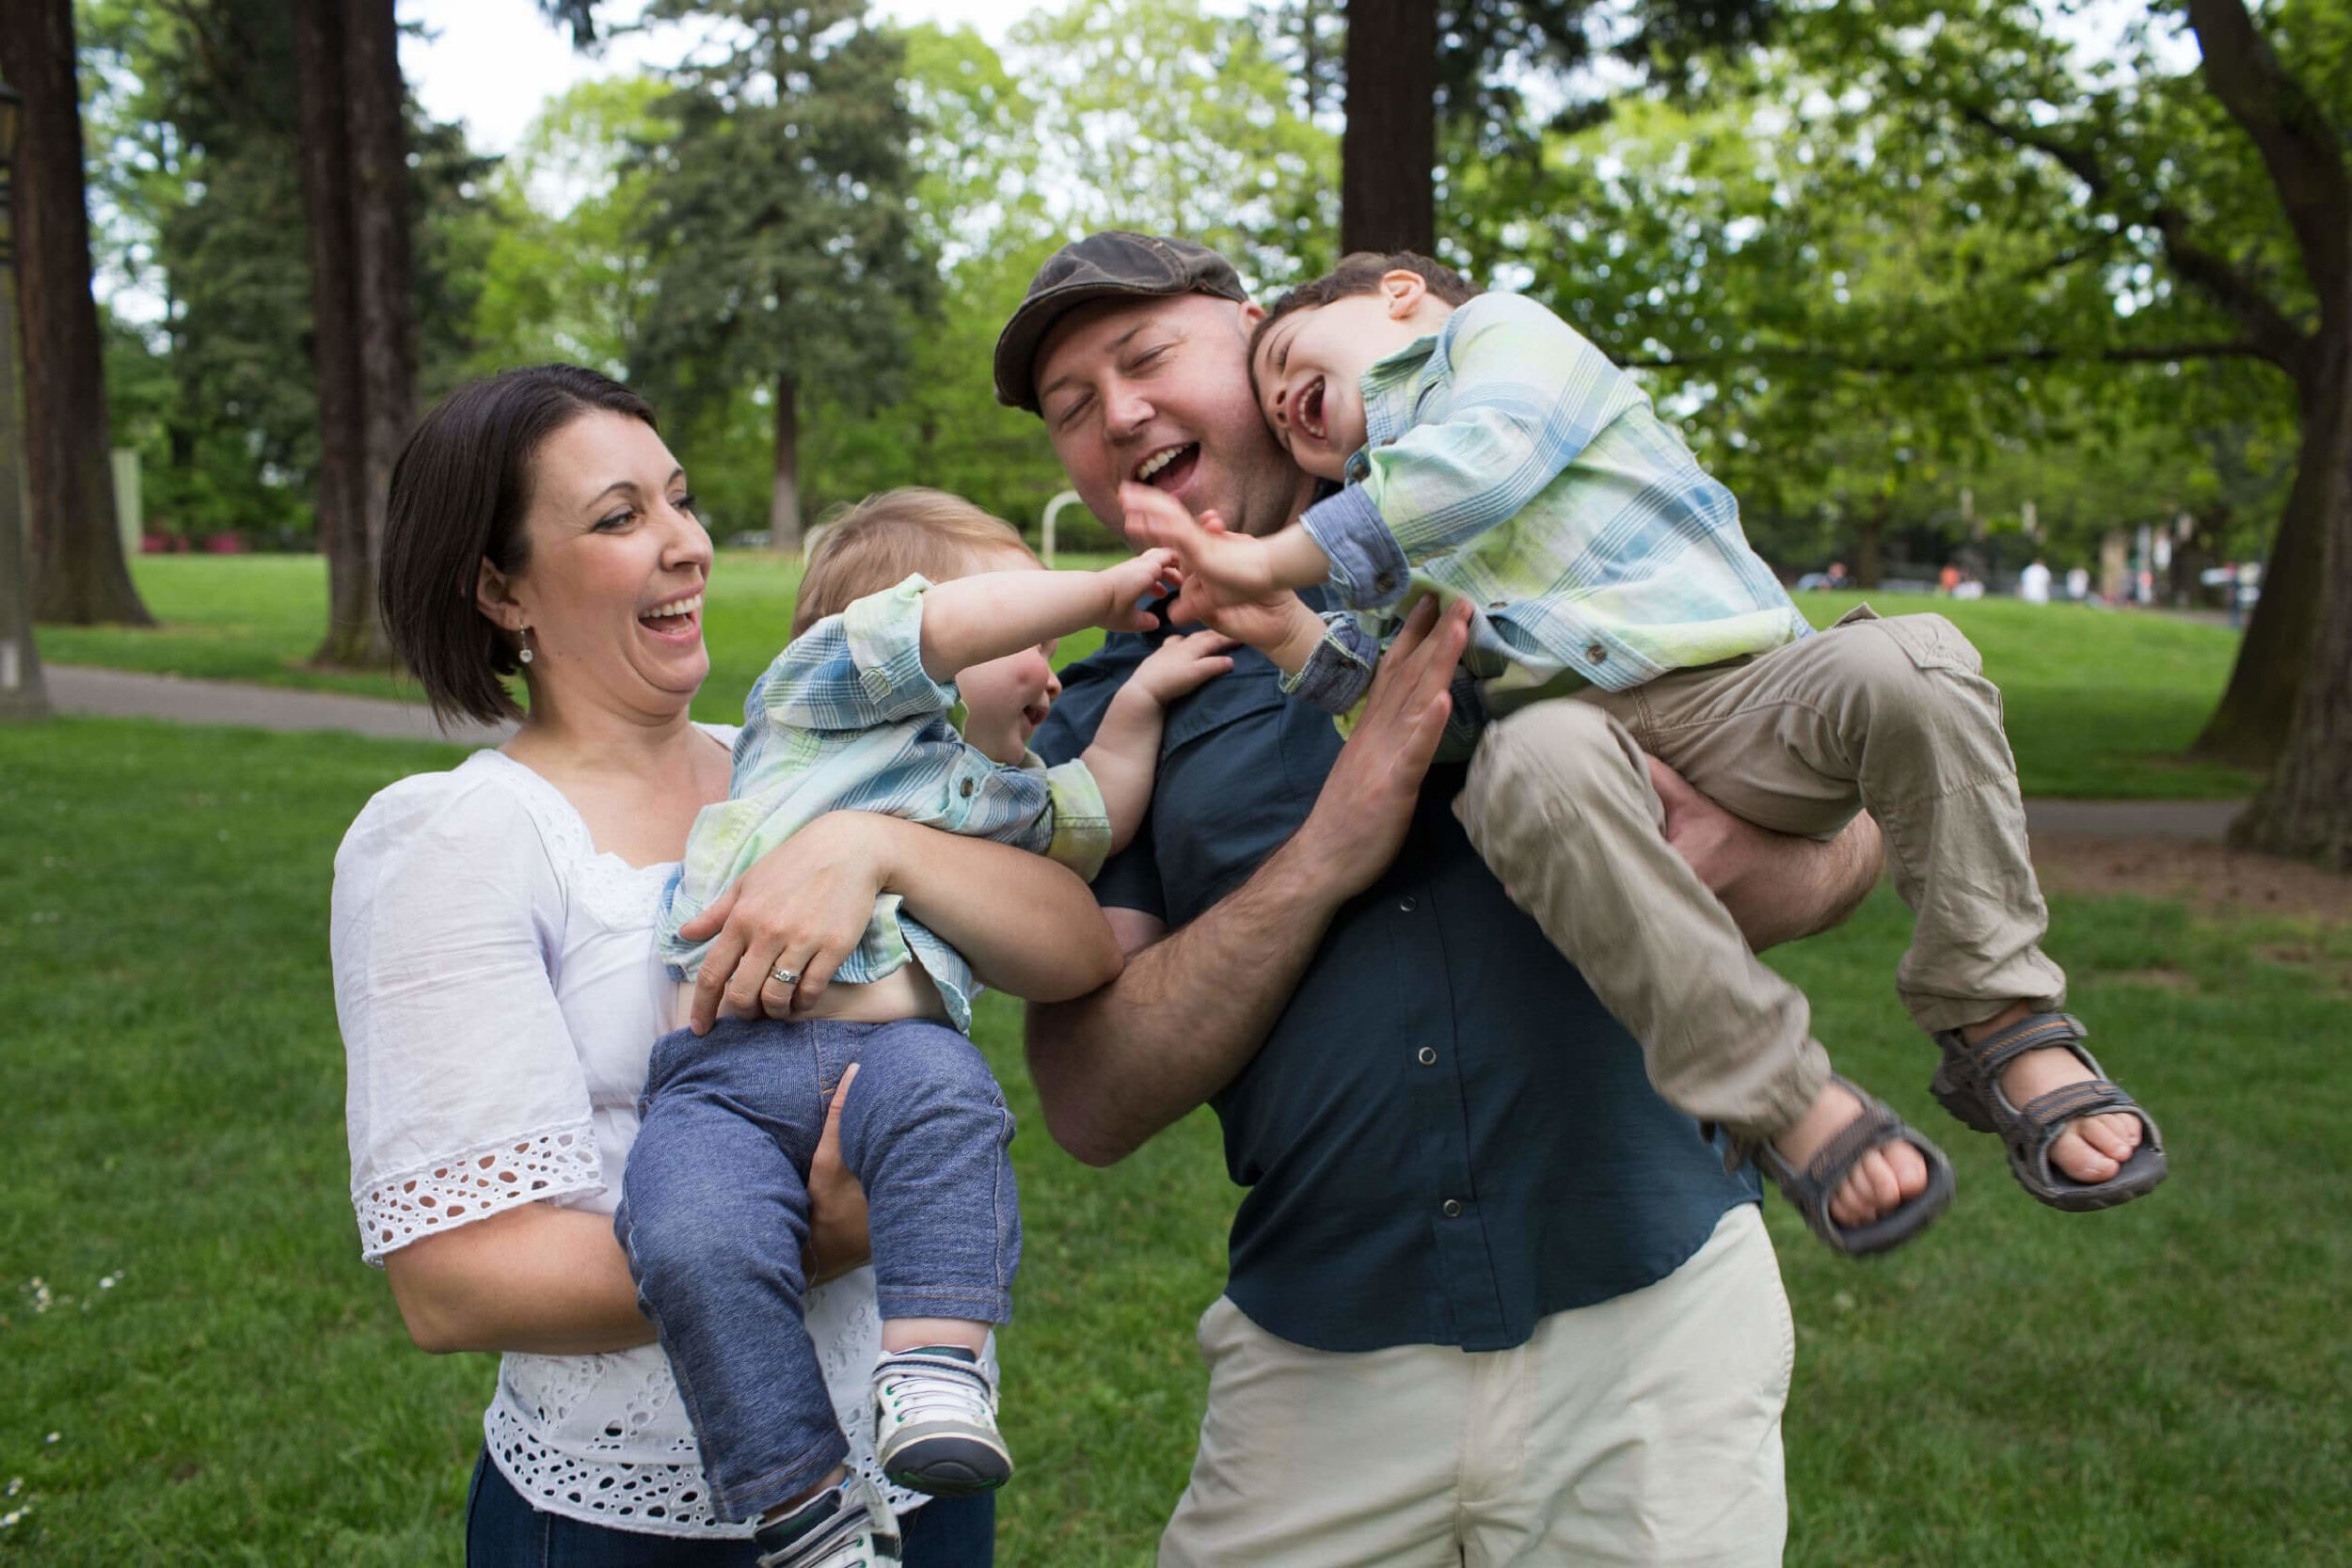 Jessica and Chris Wade with their two boys, who are the inspiration for The Wiggle Room. The Wiggle Room is a 2,000 SF indoor play space located in the heart Of NE Portland's Hollywood District.